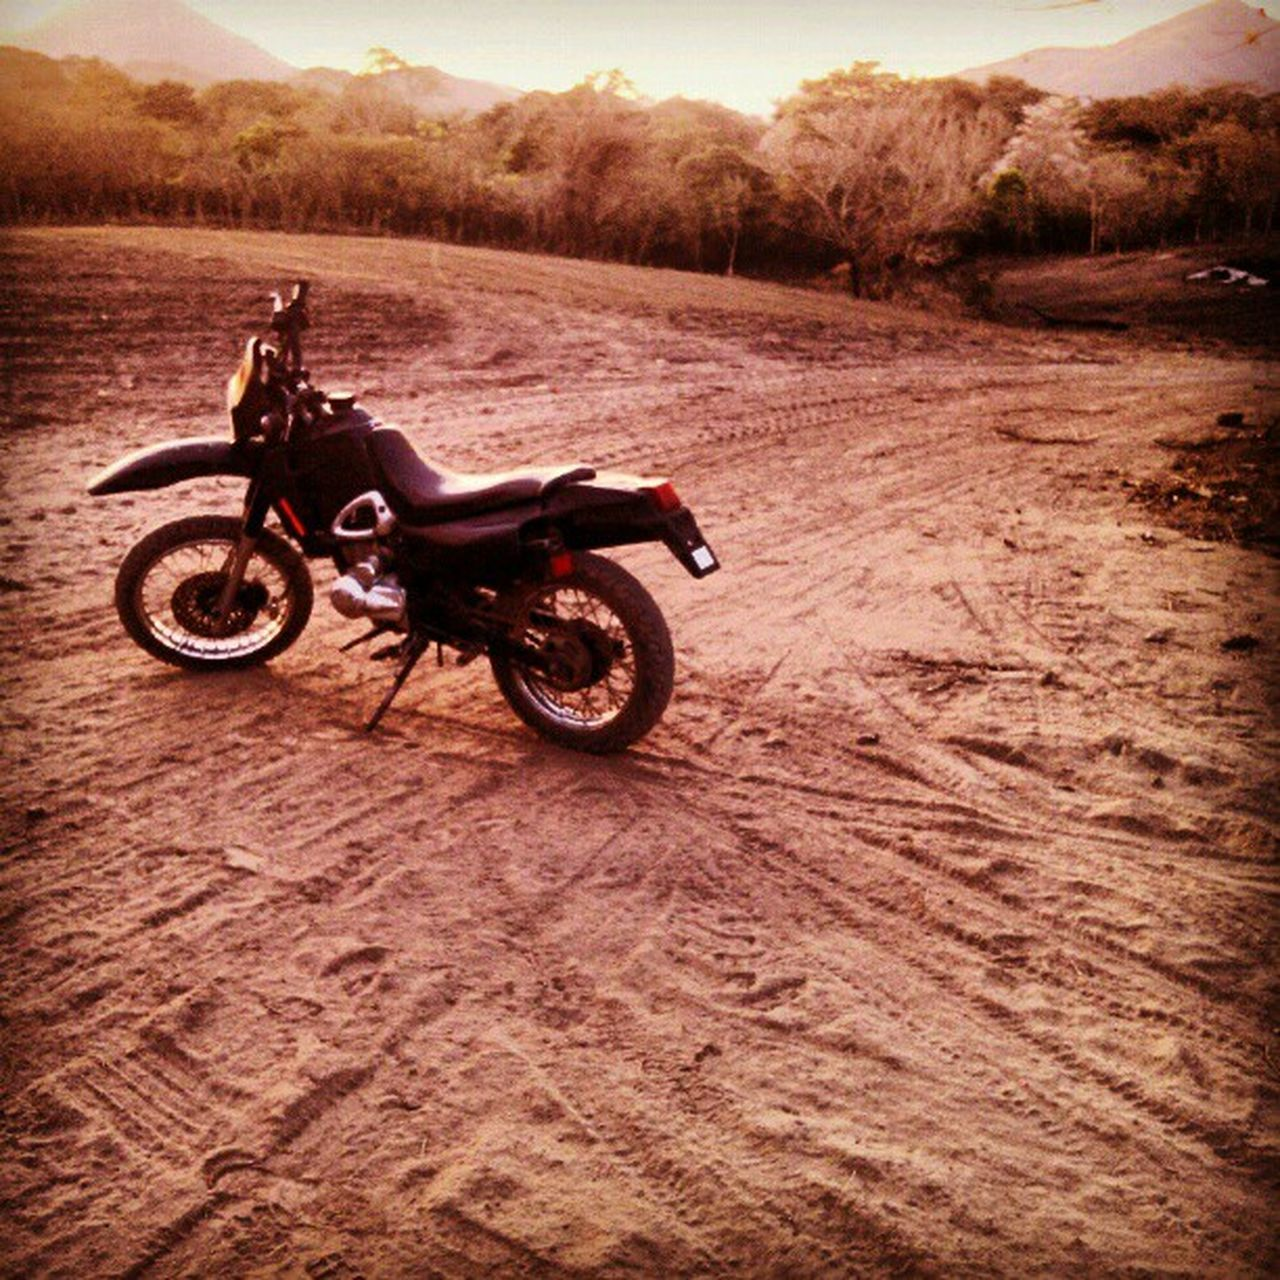 motorcycle, full length, adventure, outdoors, adult, people, desert, helmet, day, one person, adults only, motocross, one man only, only men, nature